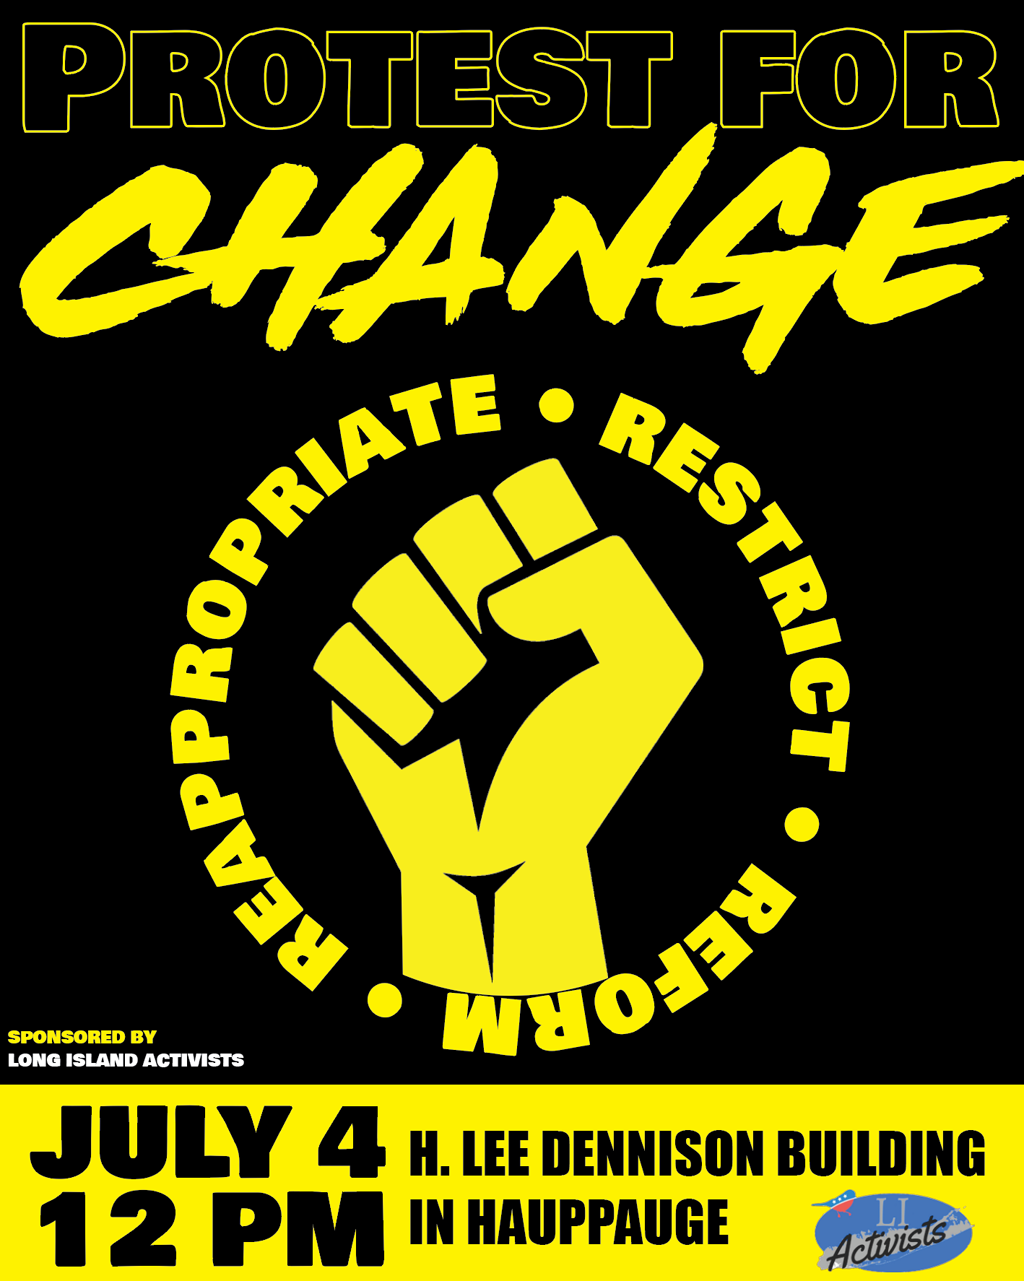 Protest for Change - 1